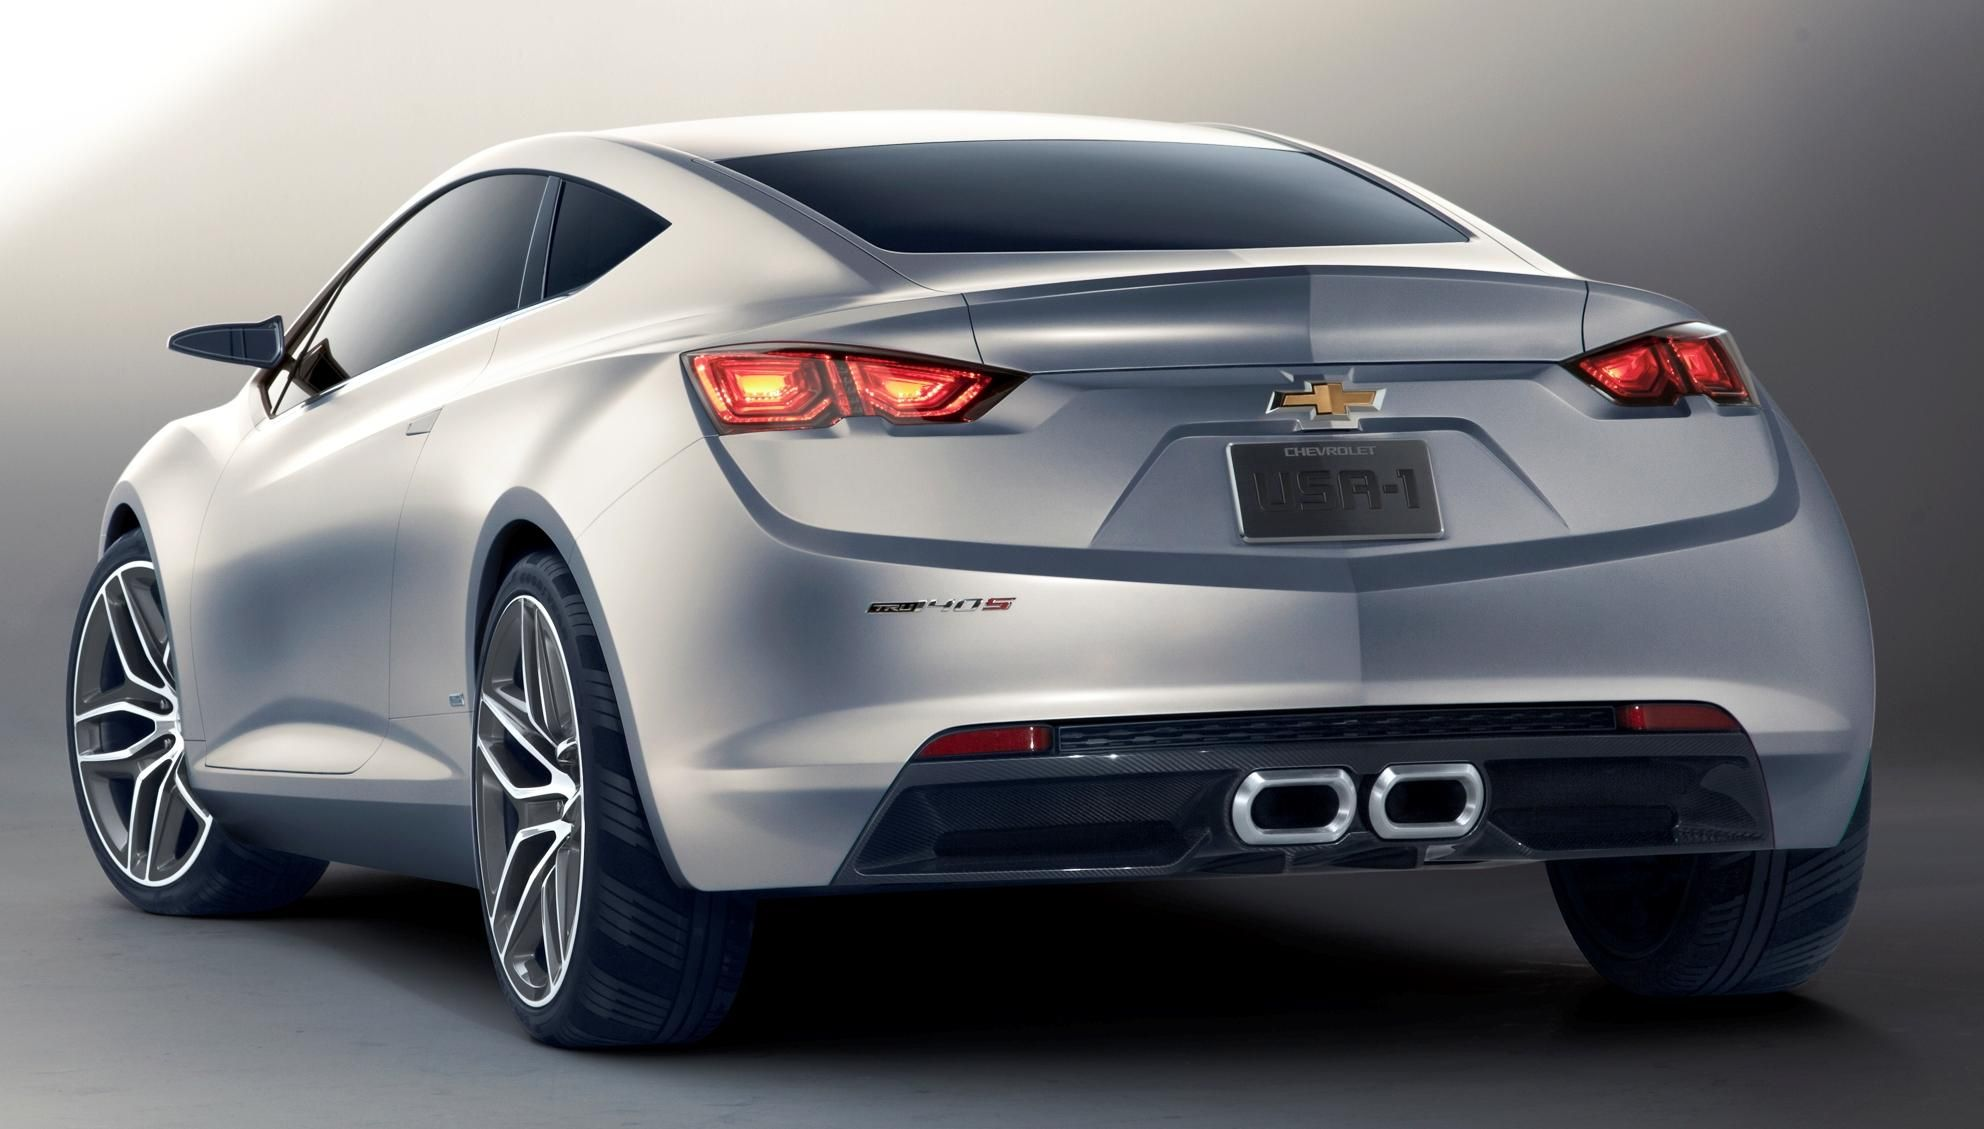 Chevy Concept Cars Wallpaper HD Images http